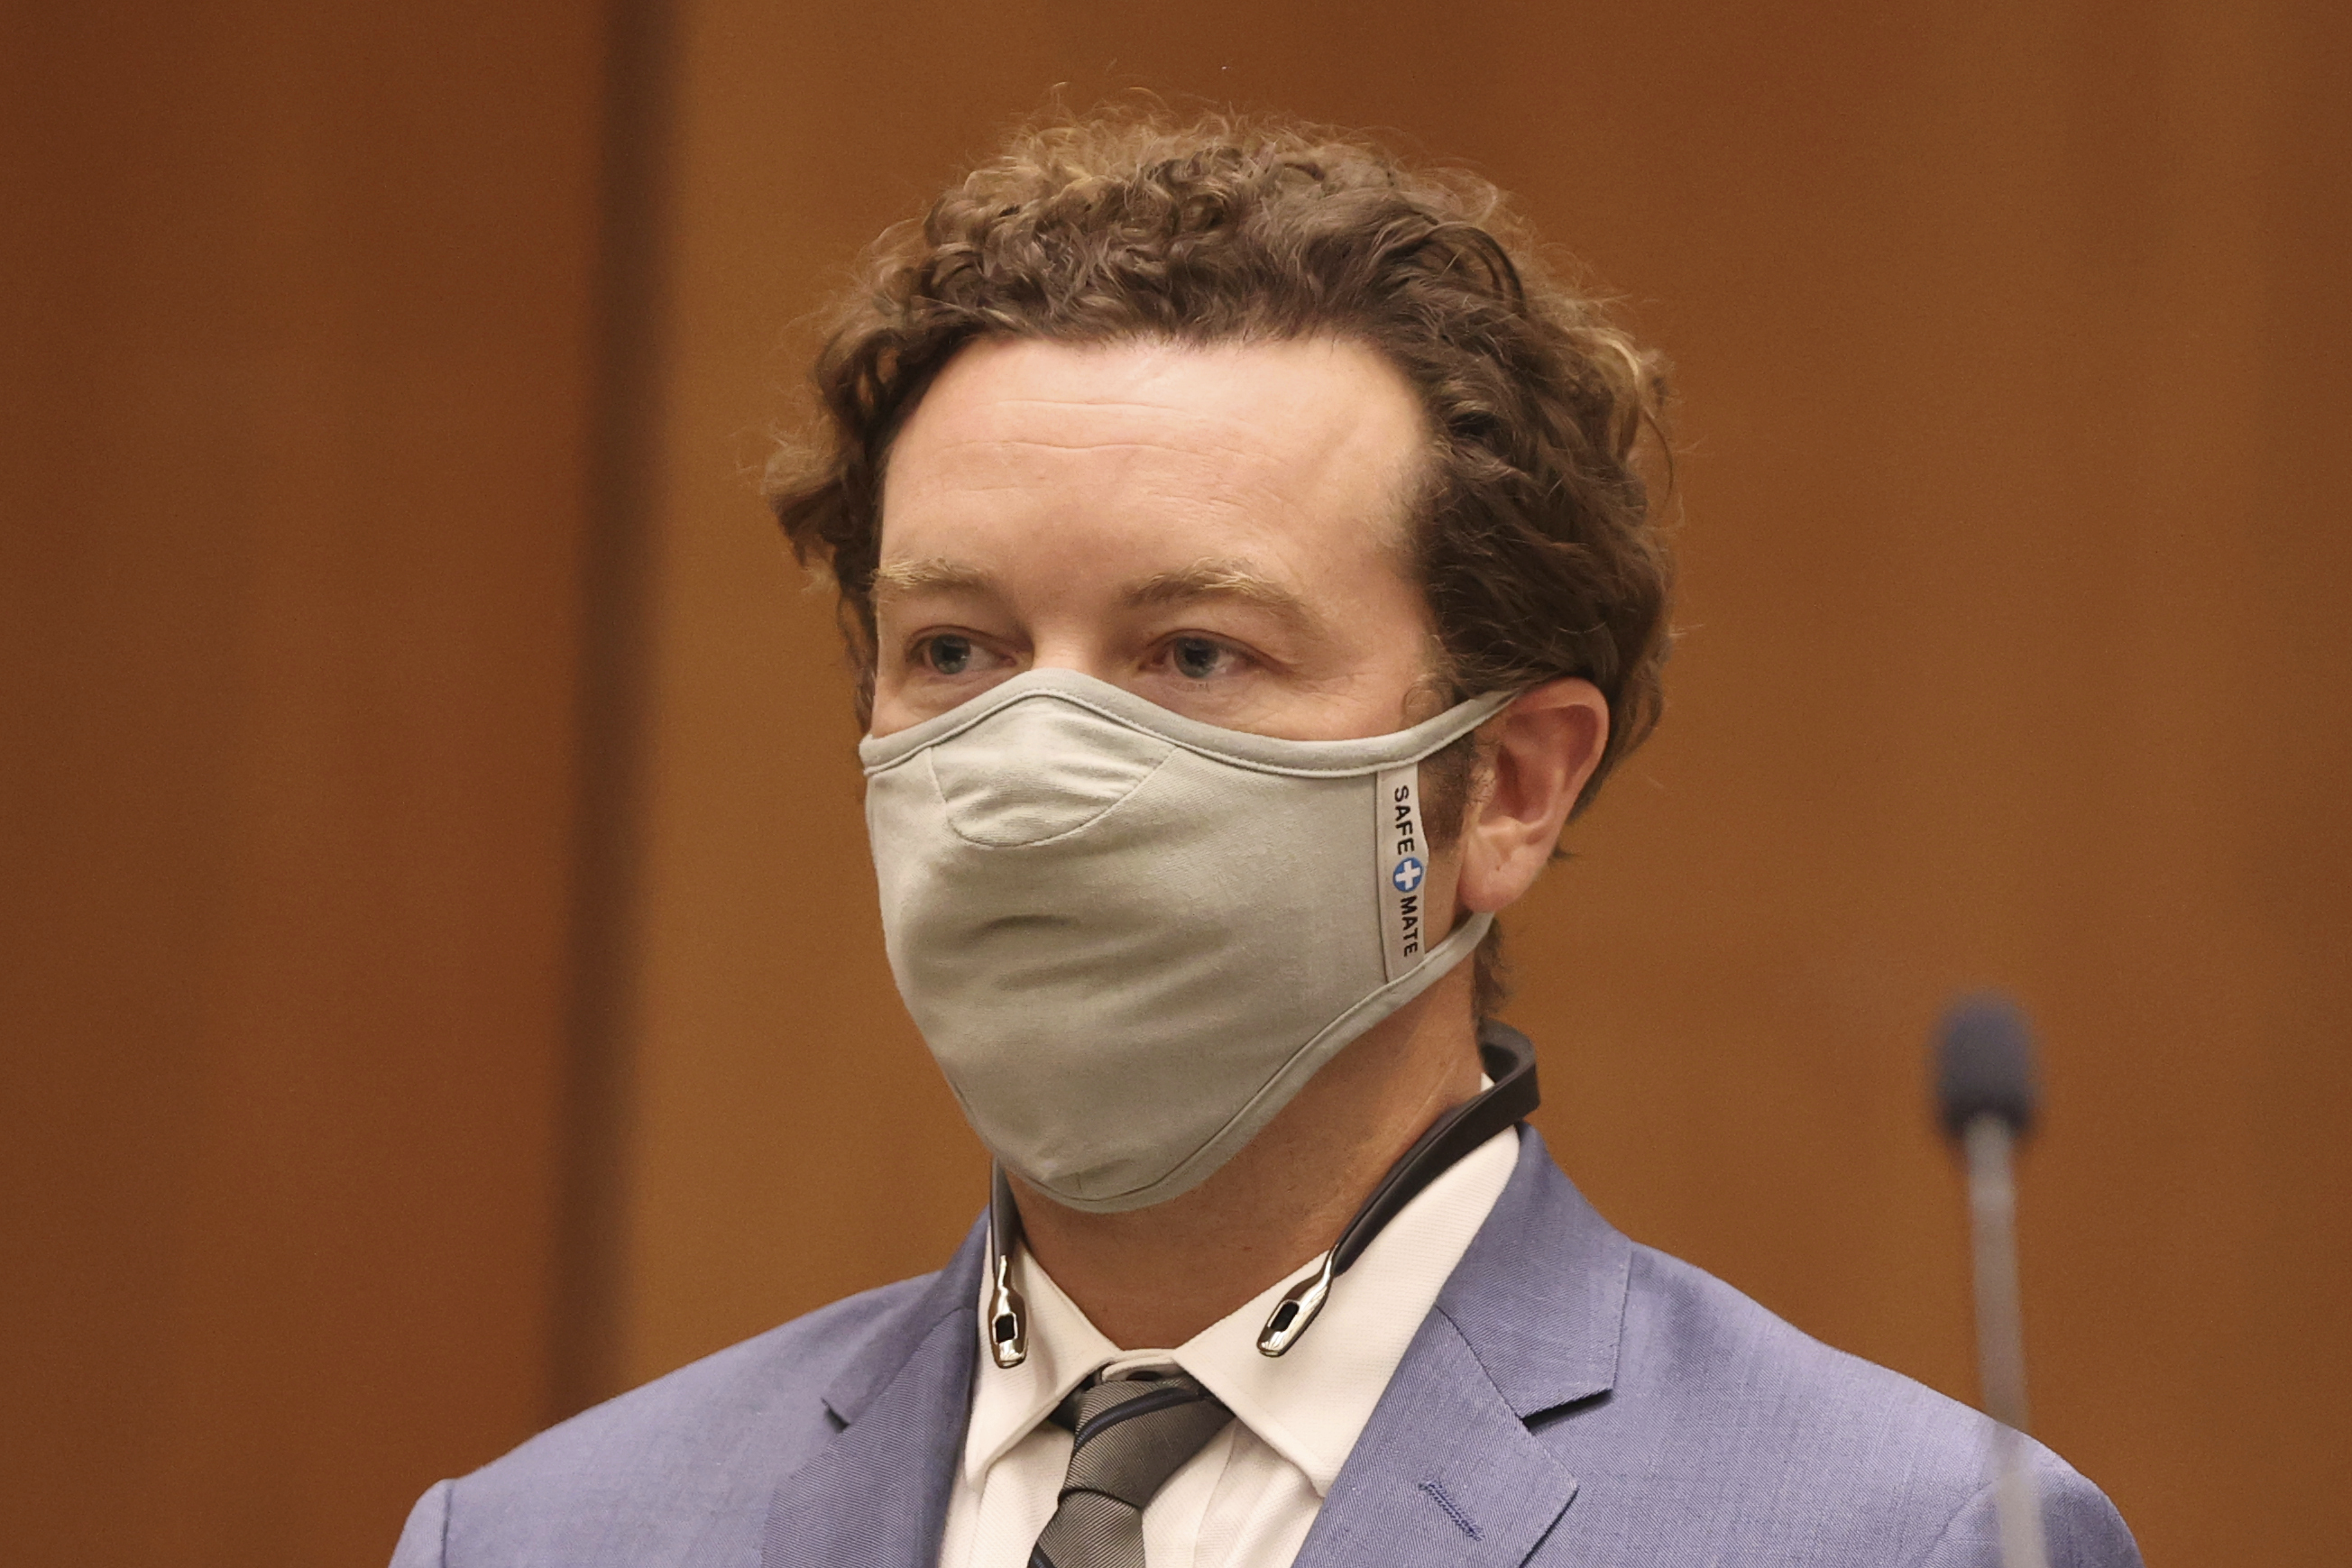 Sexual Misconduct Danny Masterson